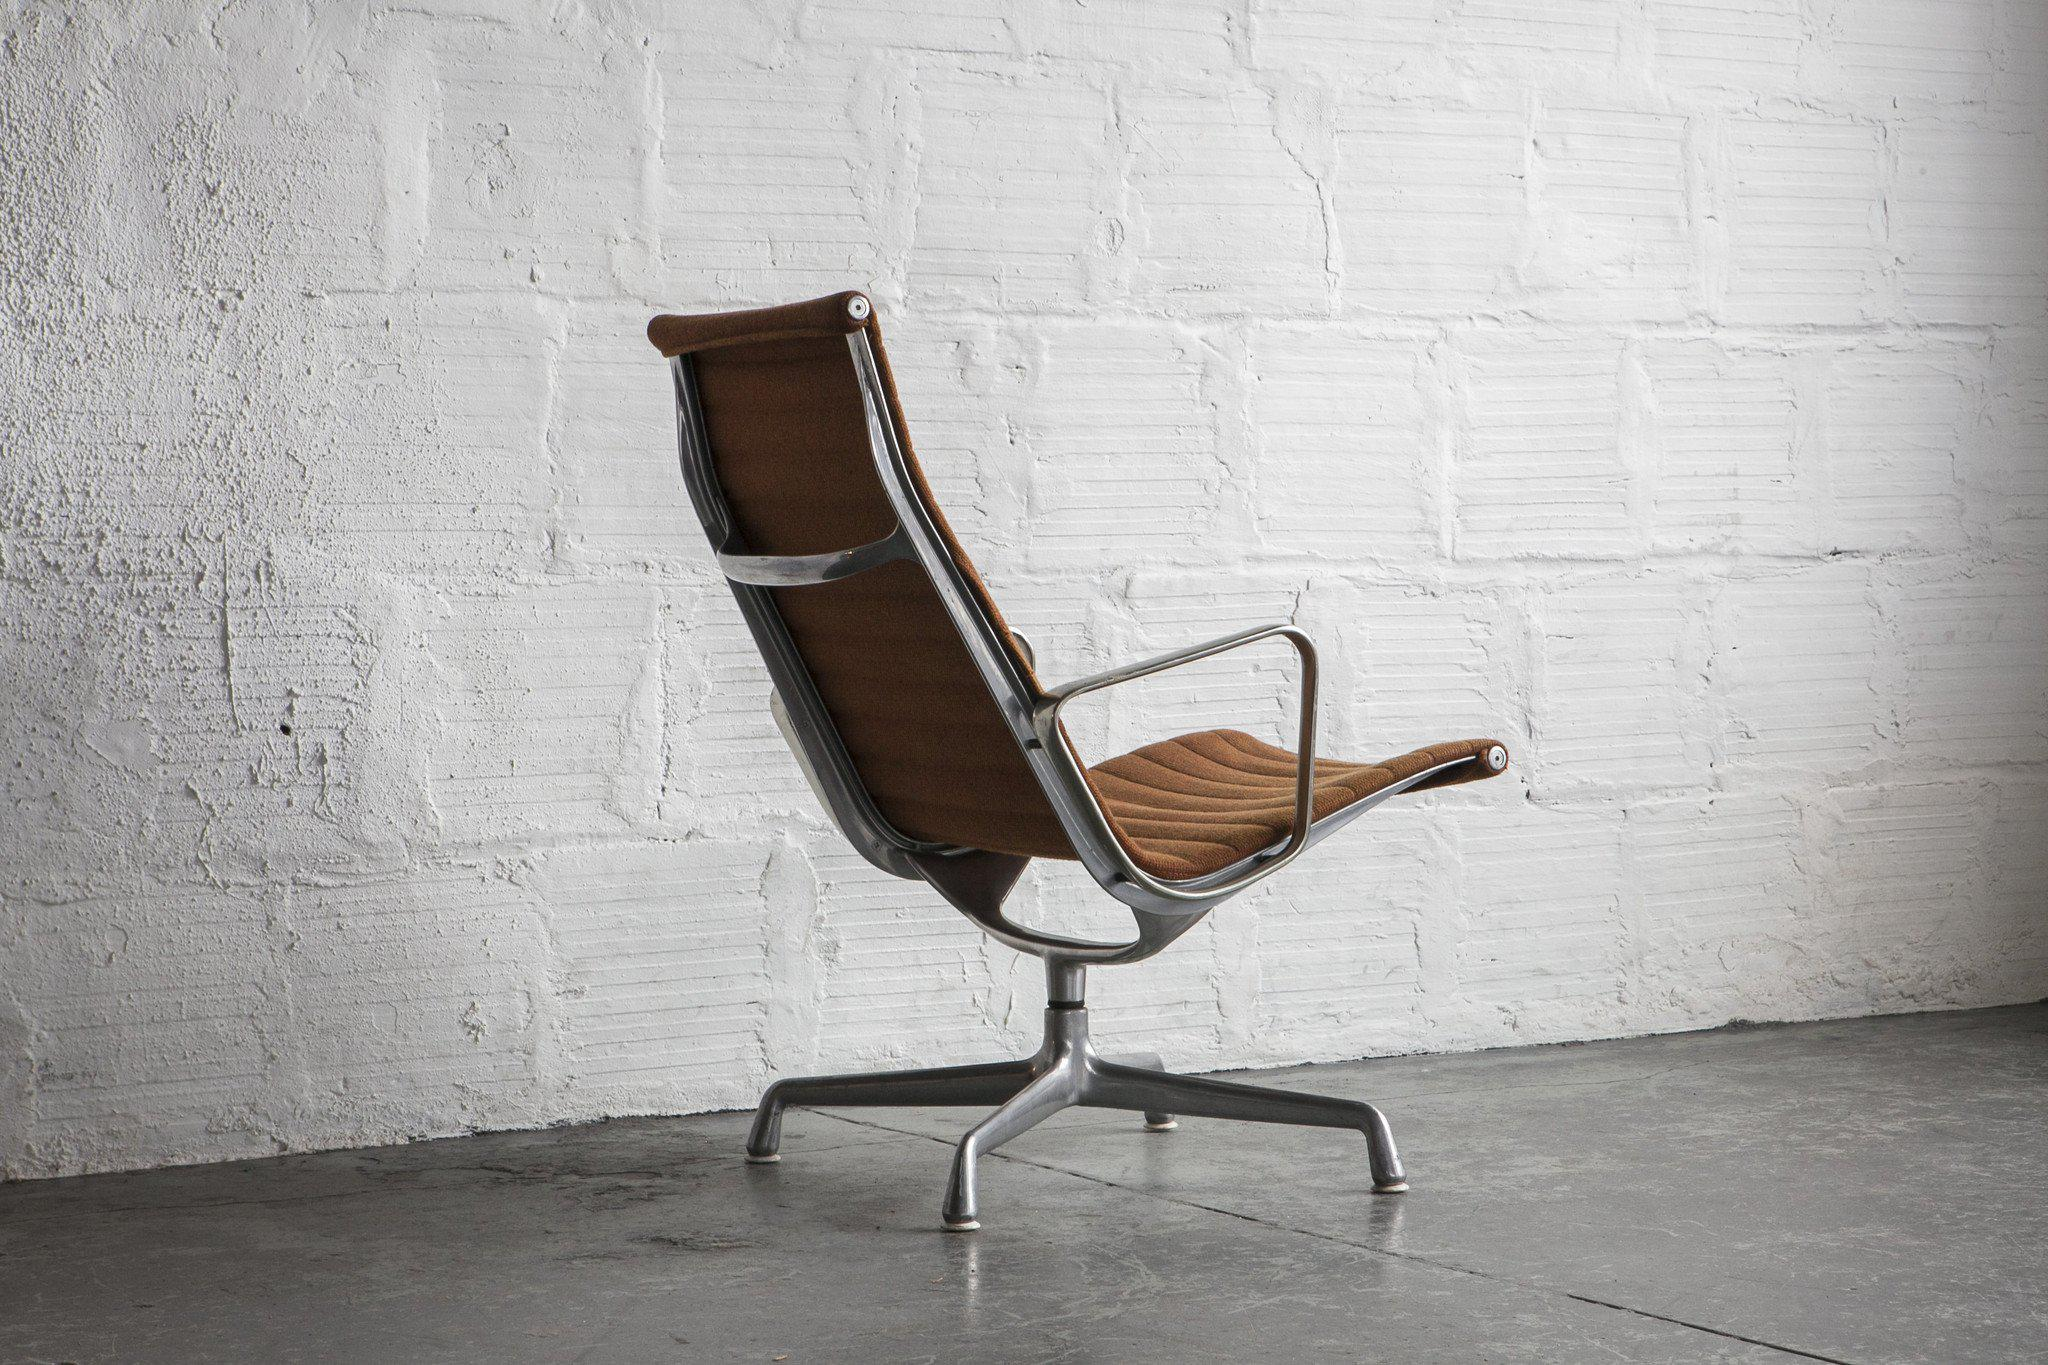 Ordinaire Eames Aluminum Group Lounge Chair   Image 7 Of 8